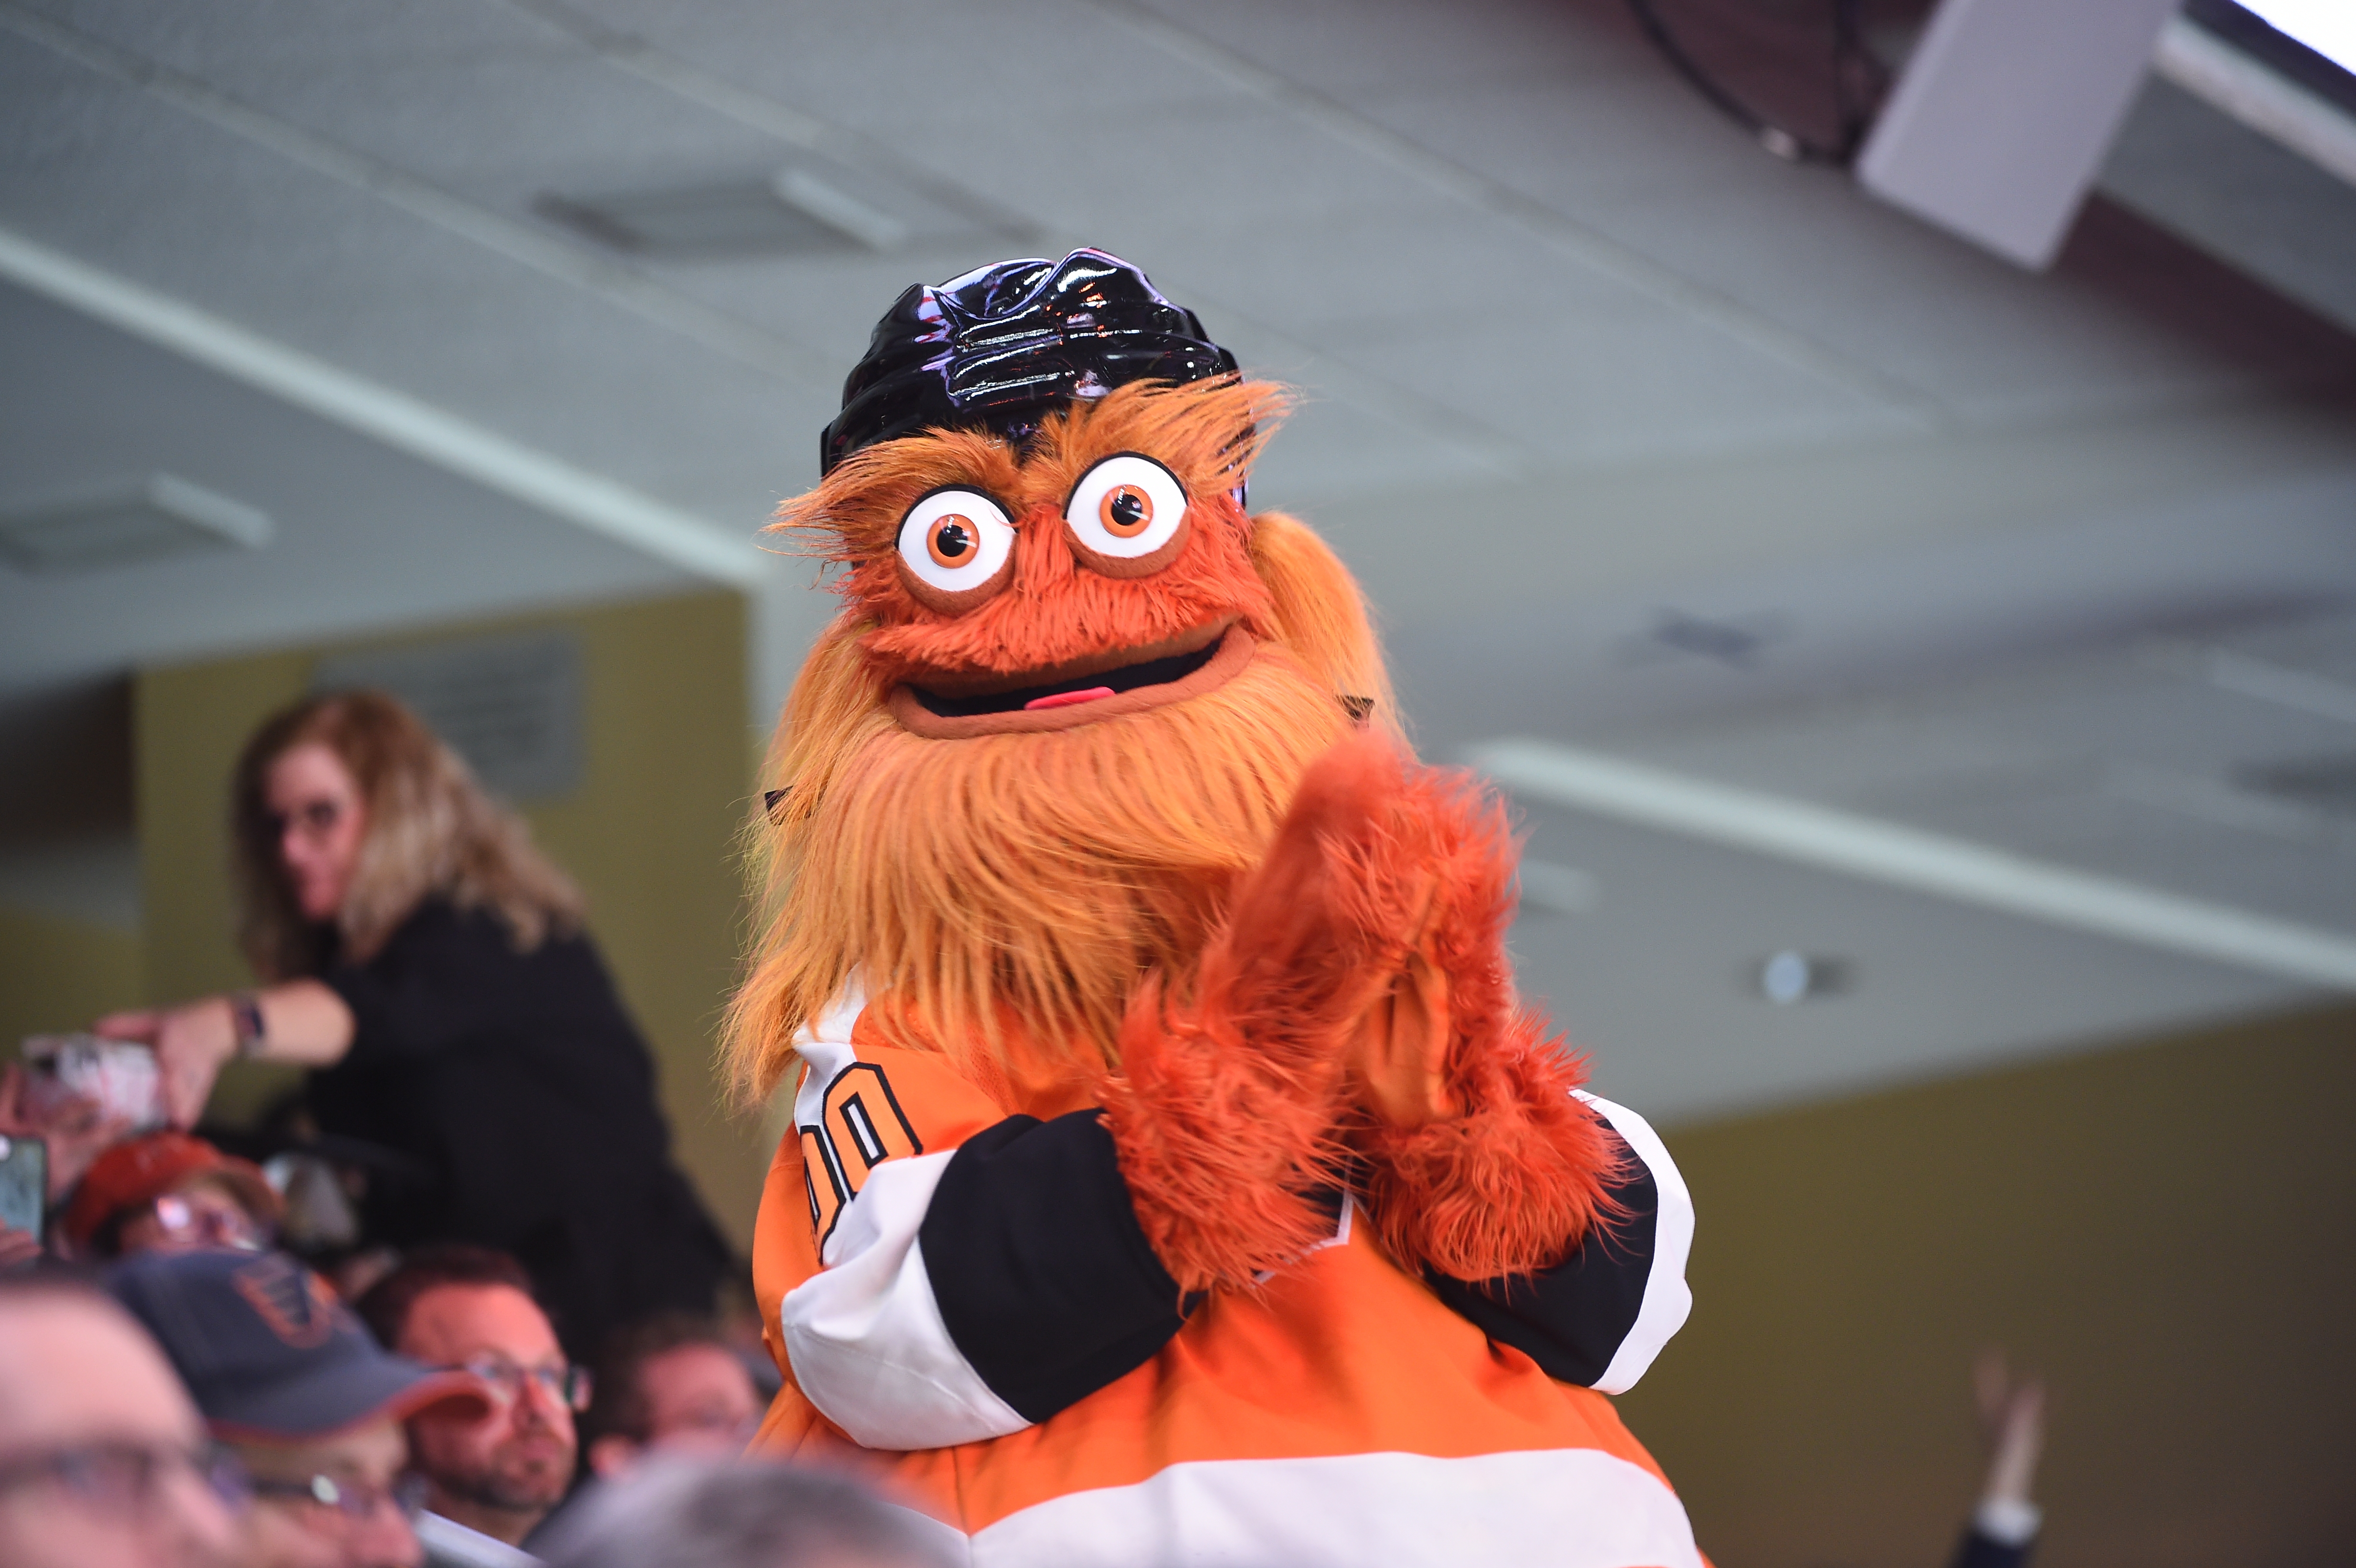 Flyers mascot Gritty looks on during the game on Jan. 13, 2020, at the Wells Fargo Center in Philadelphia, PA.